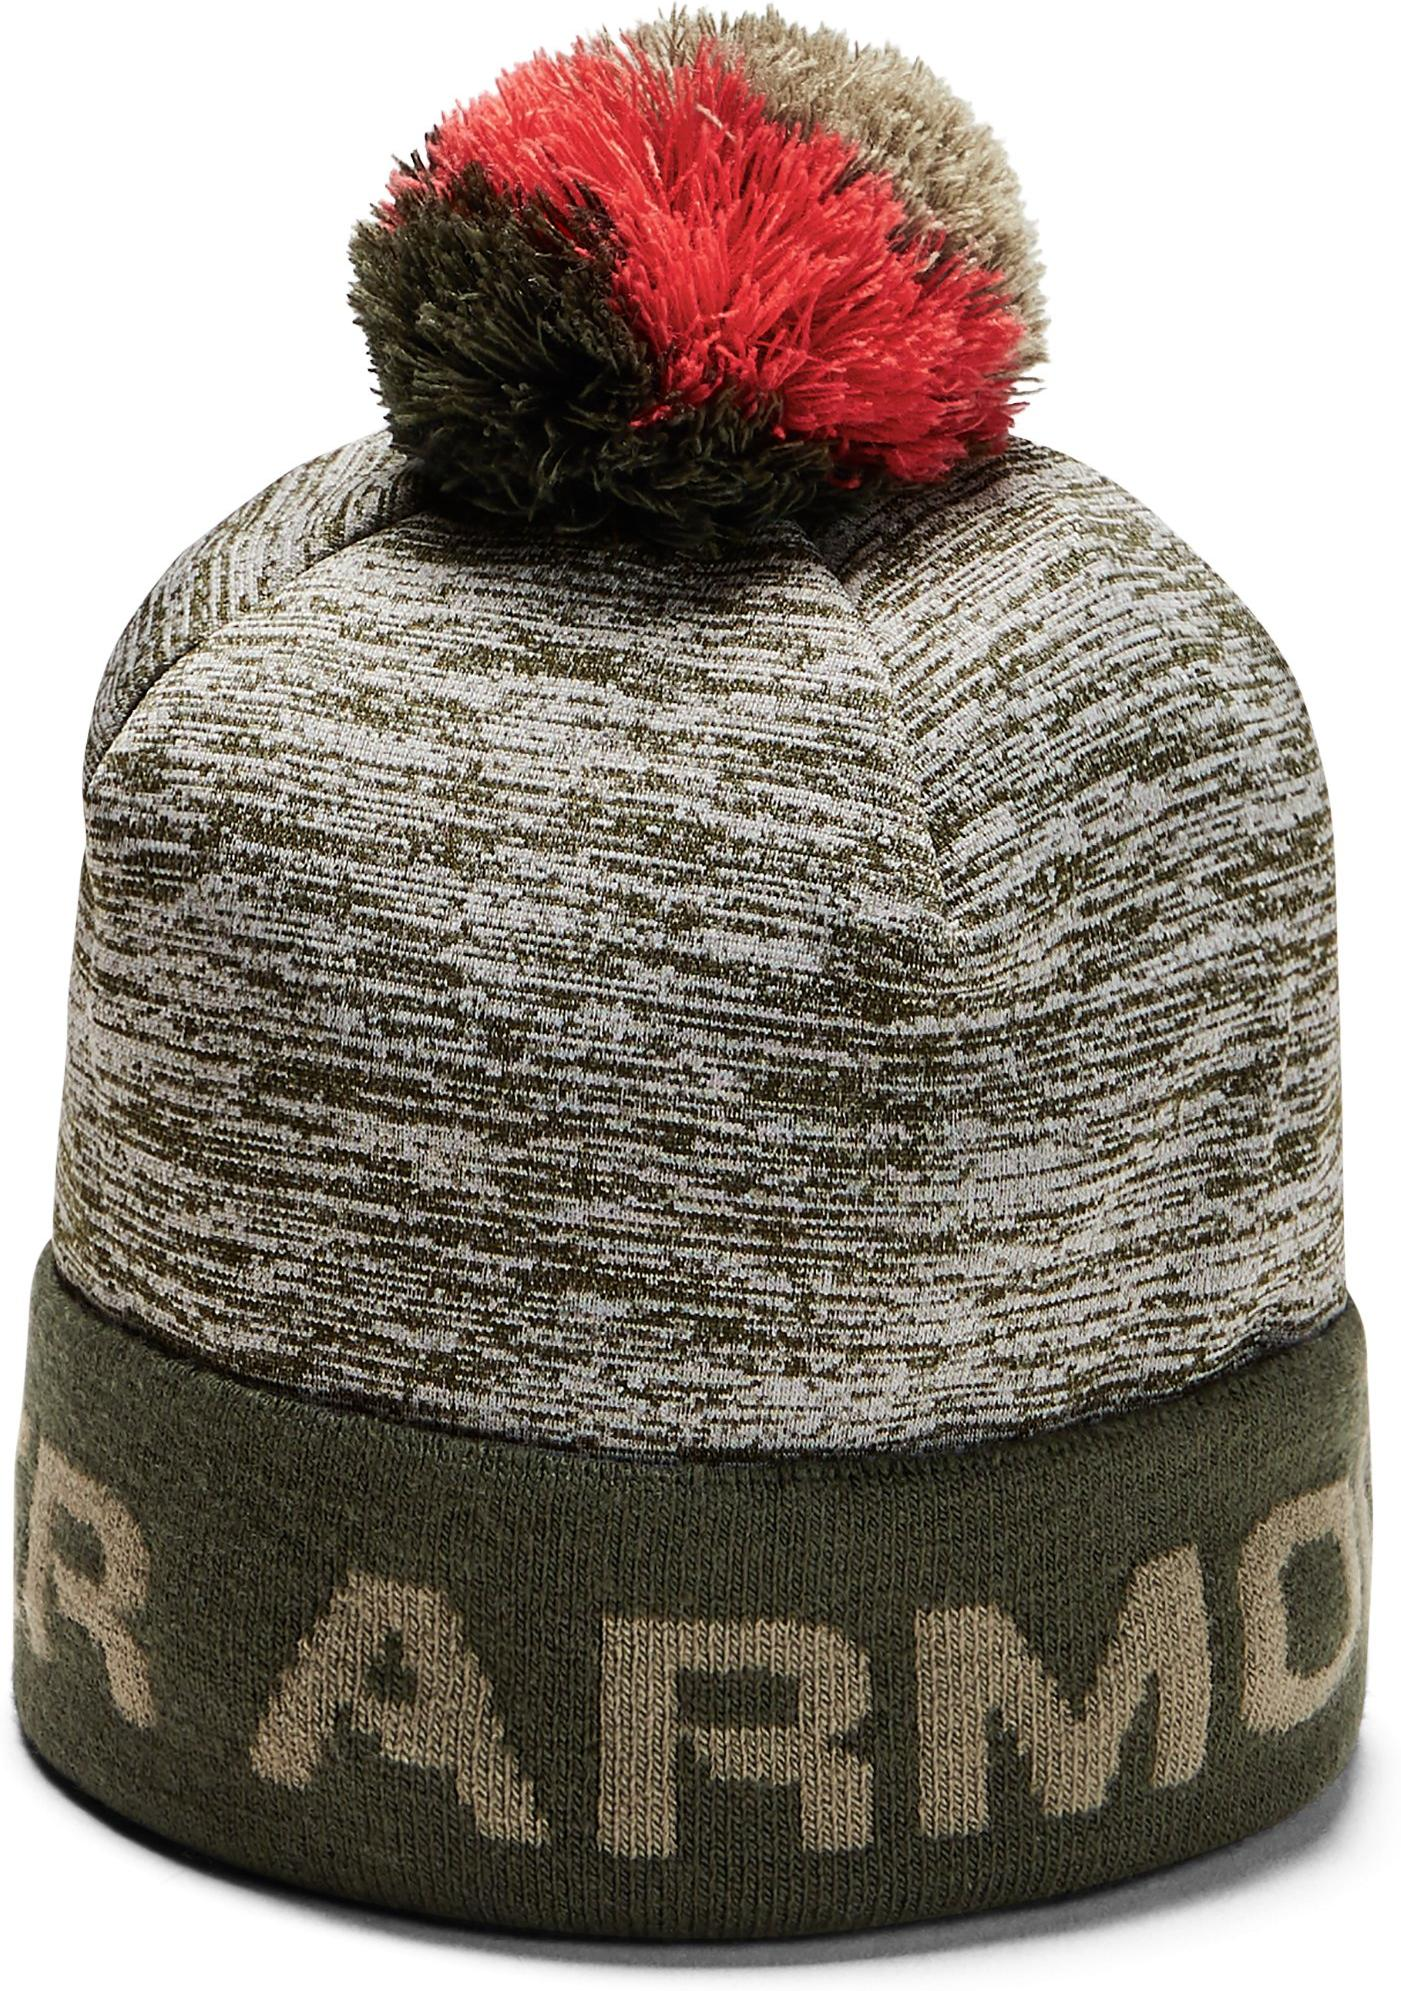 Kape Under Armour Boy's Gametime Pom Beanie